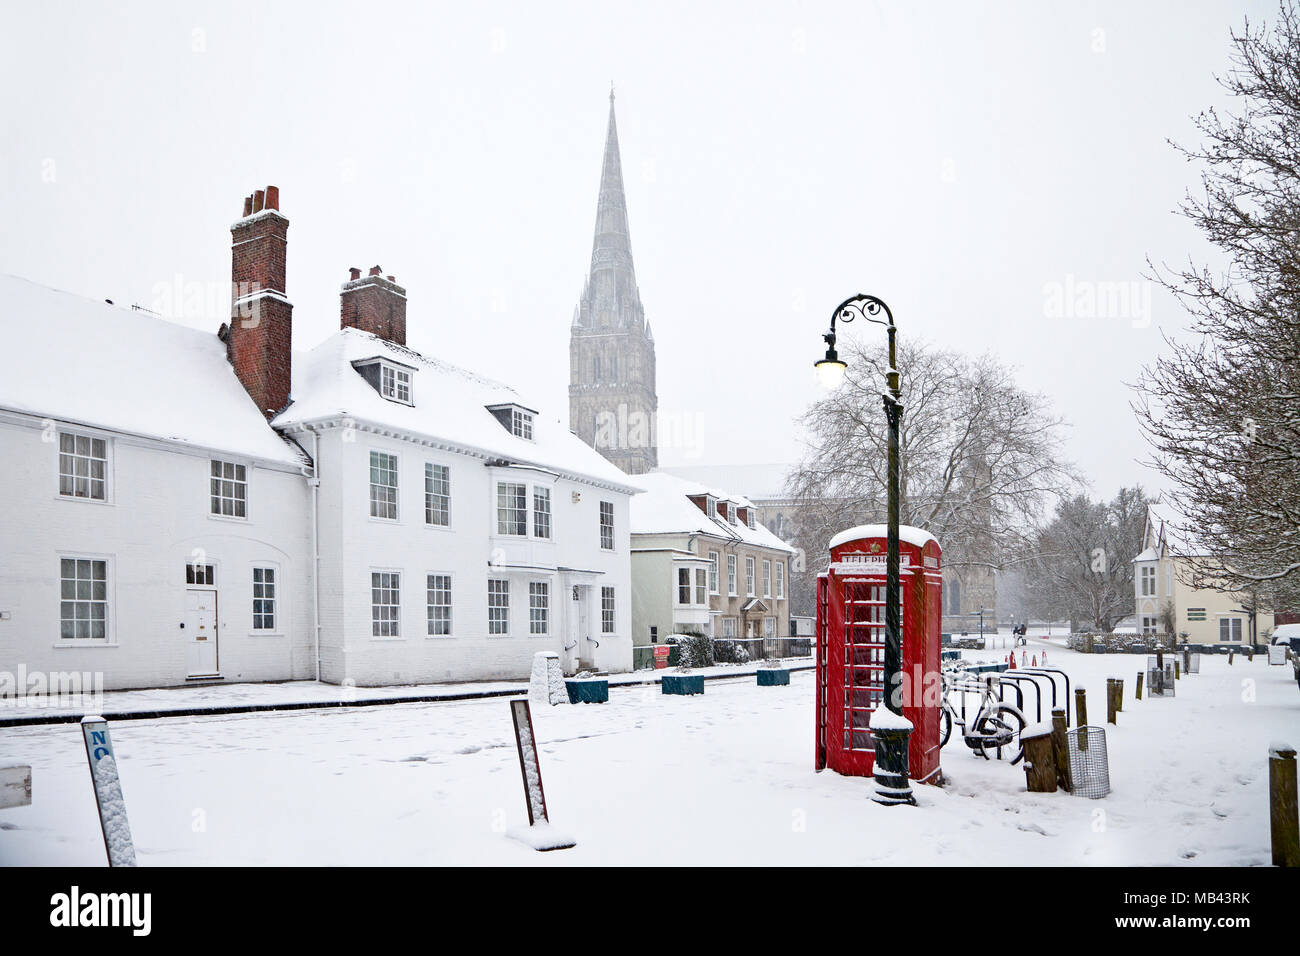 A telephone box amidst snow in the cathedral close in Salisbury in Wiltshire. - Stock Image